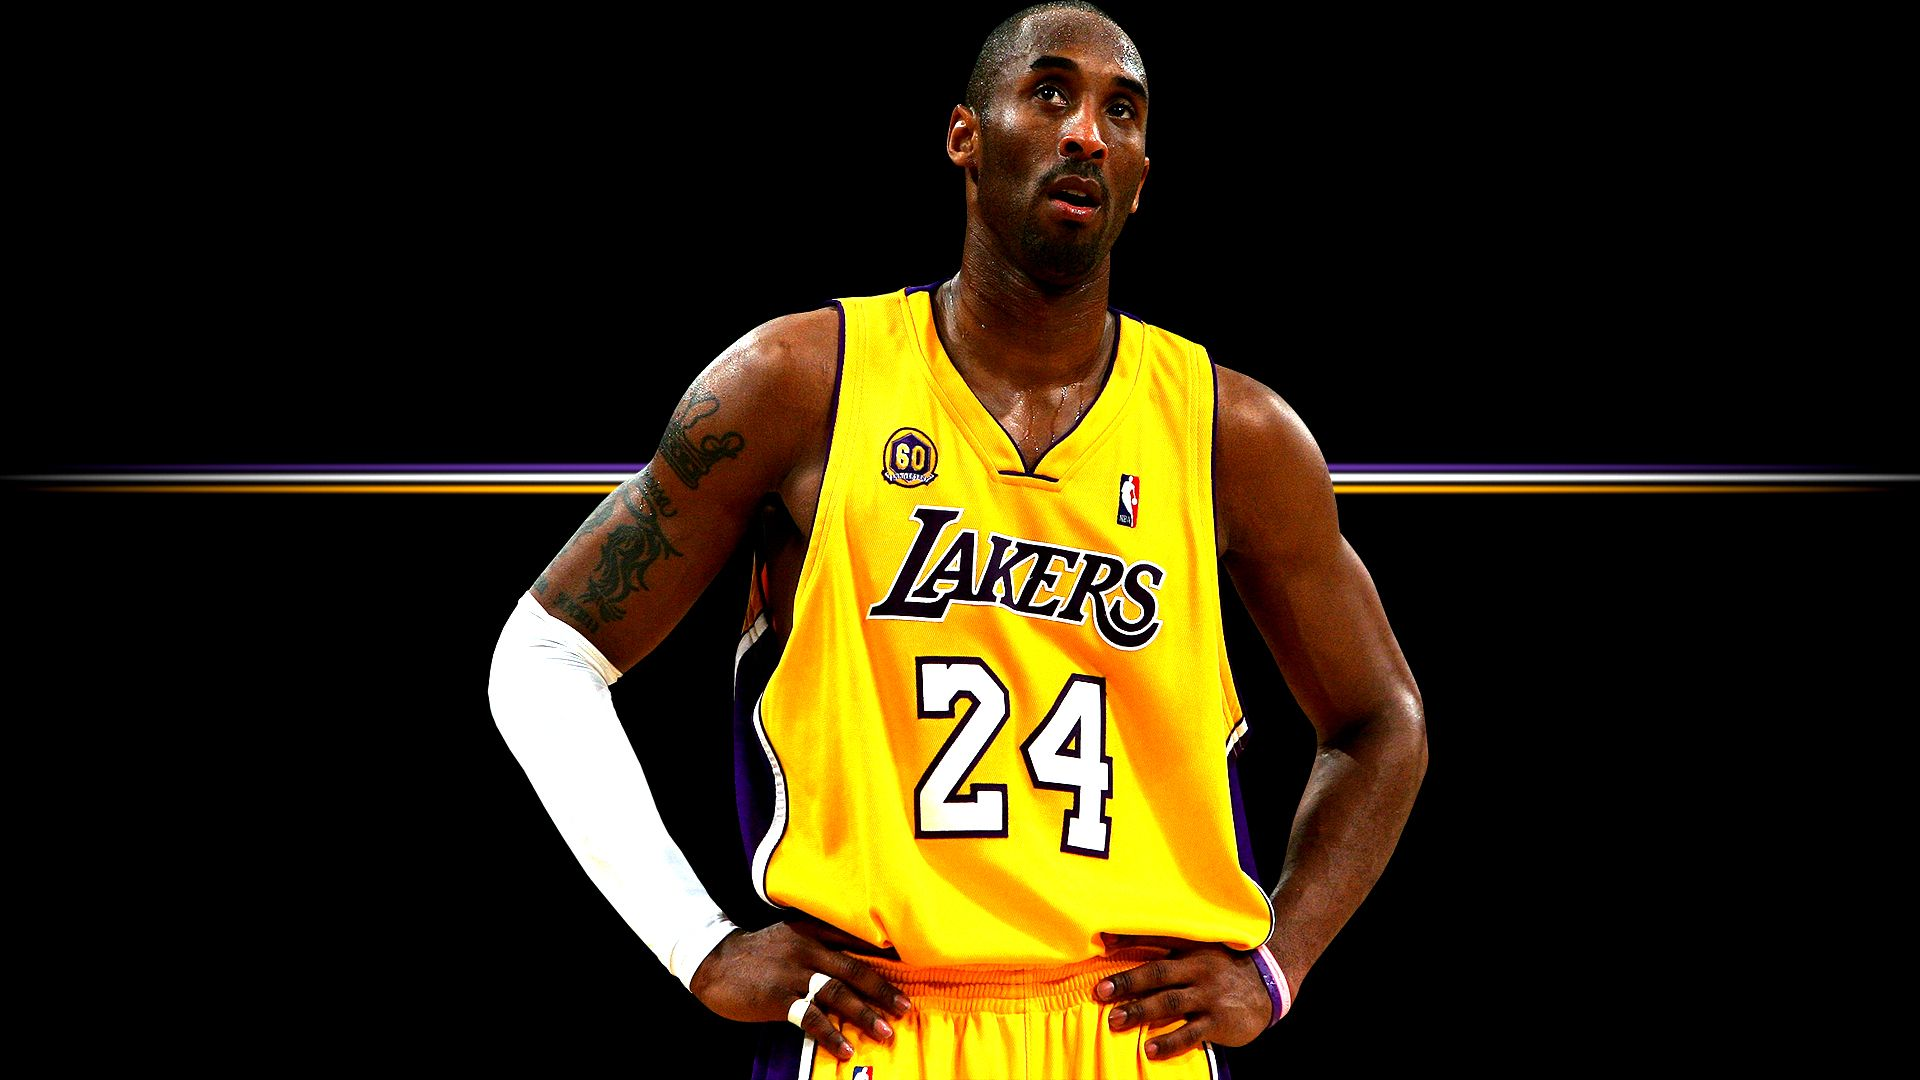 kobe bryant Kobe Bryant Desktop Wallpaper Collection